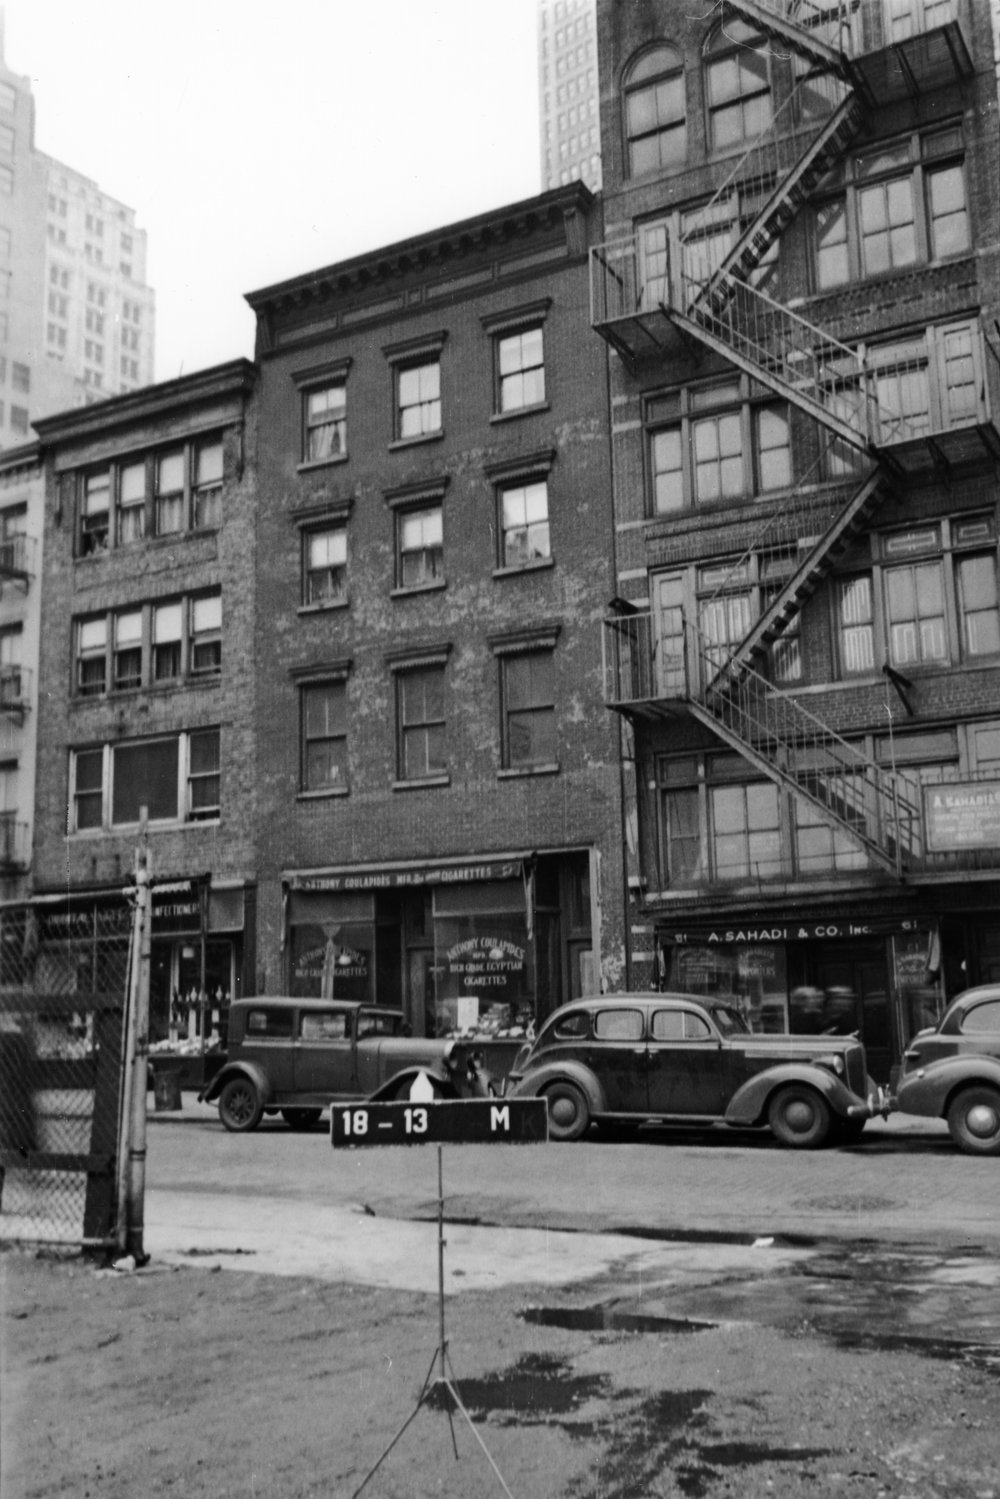 63 Washington Street, ca. 1939